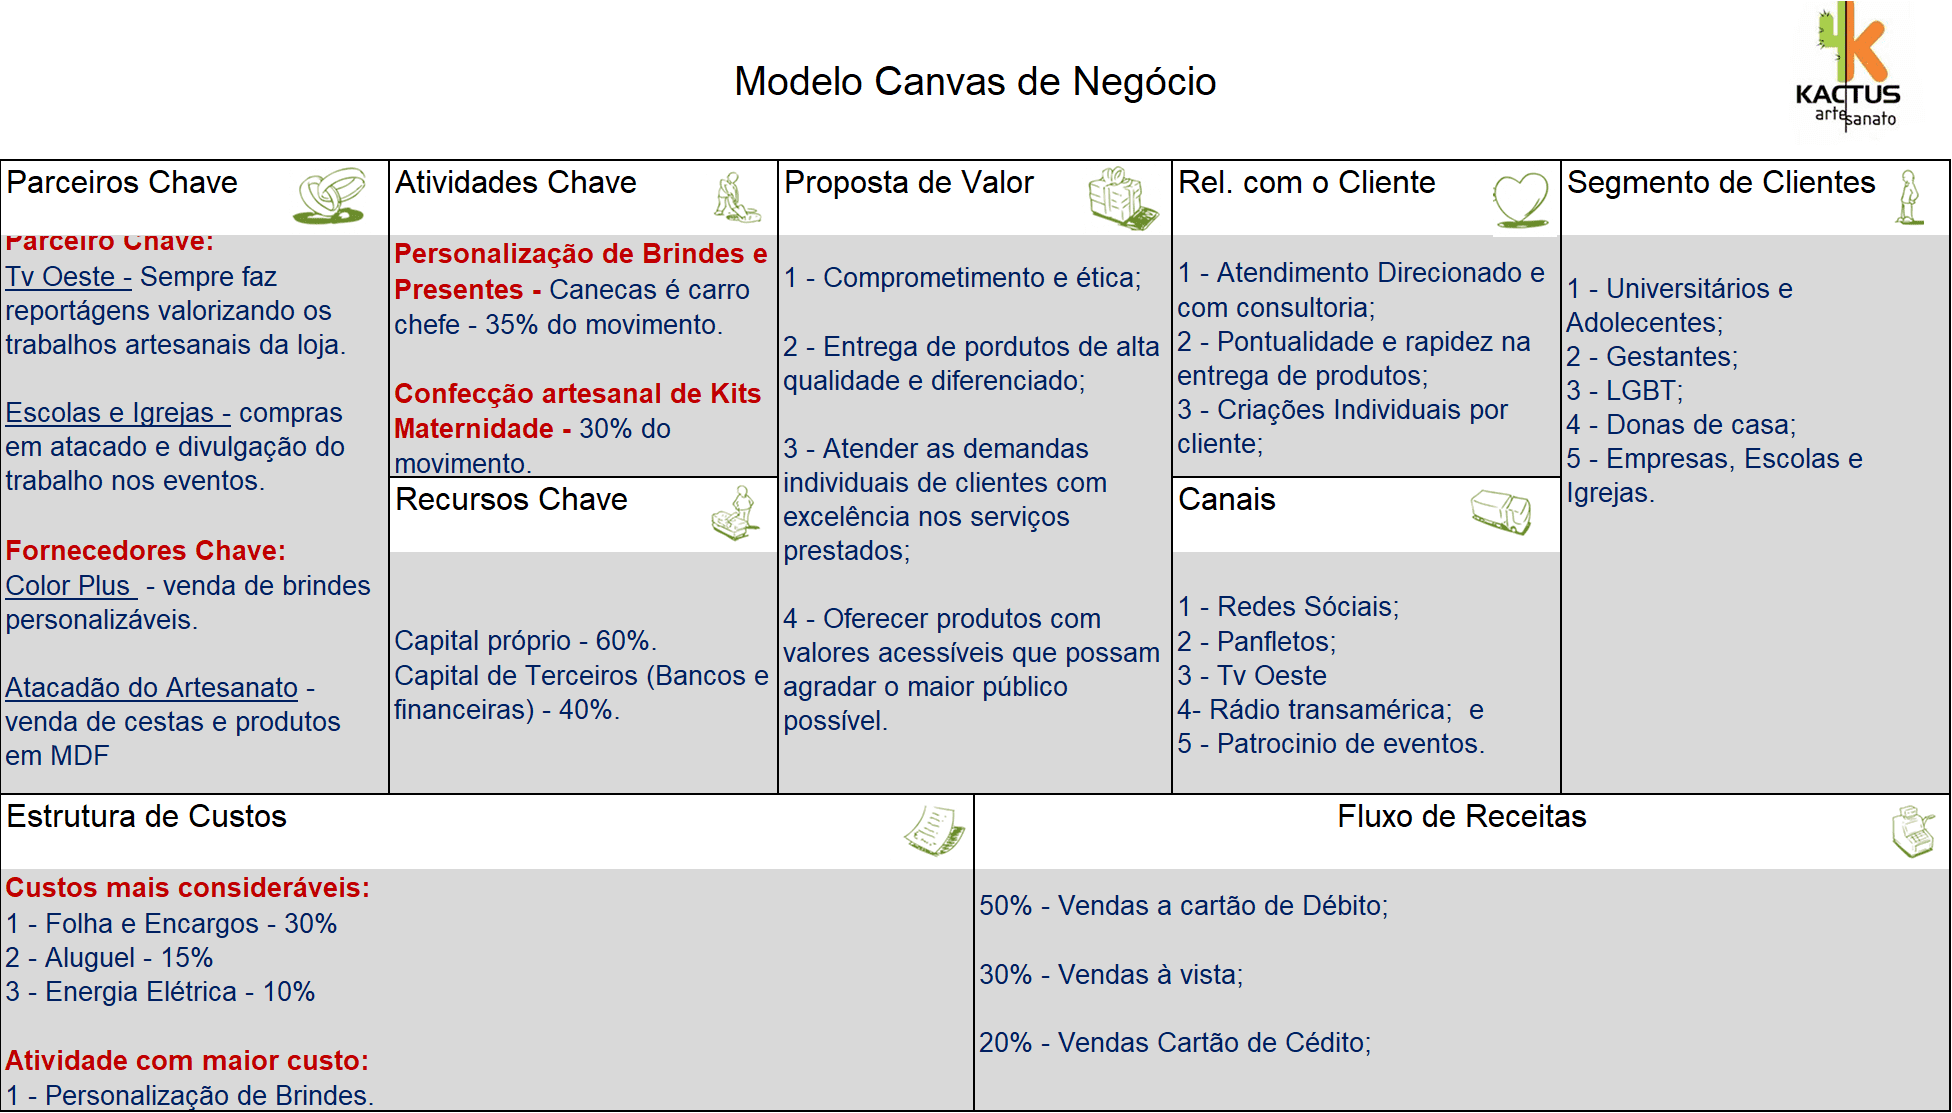 TABLE 1: planning for the Canvas. Source: extracted from the Model site from SEBRAE MG.